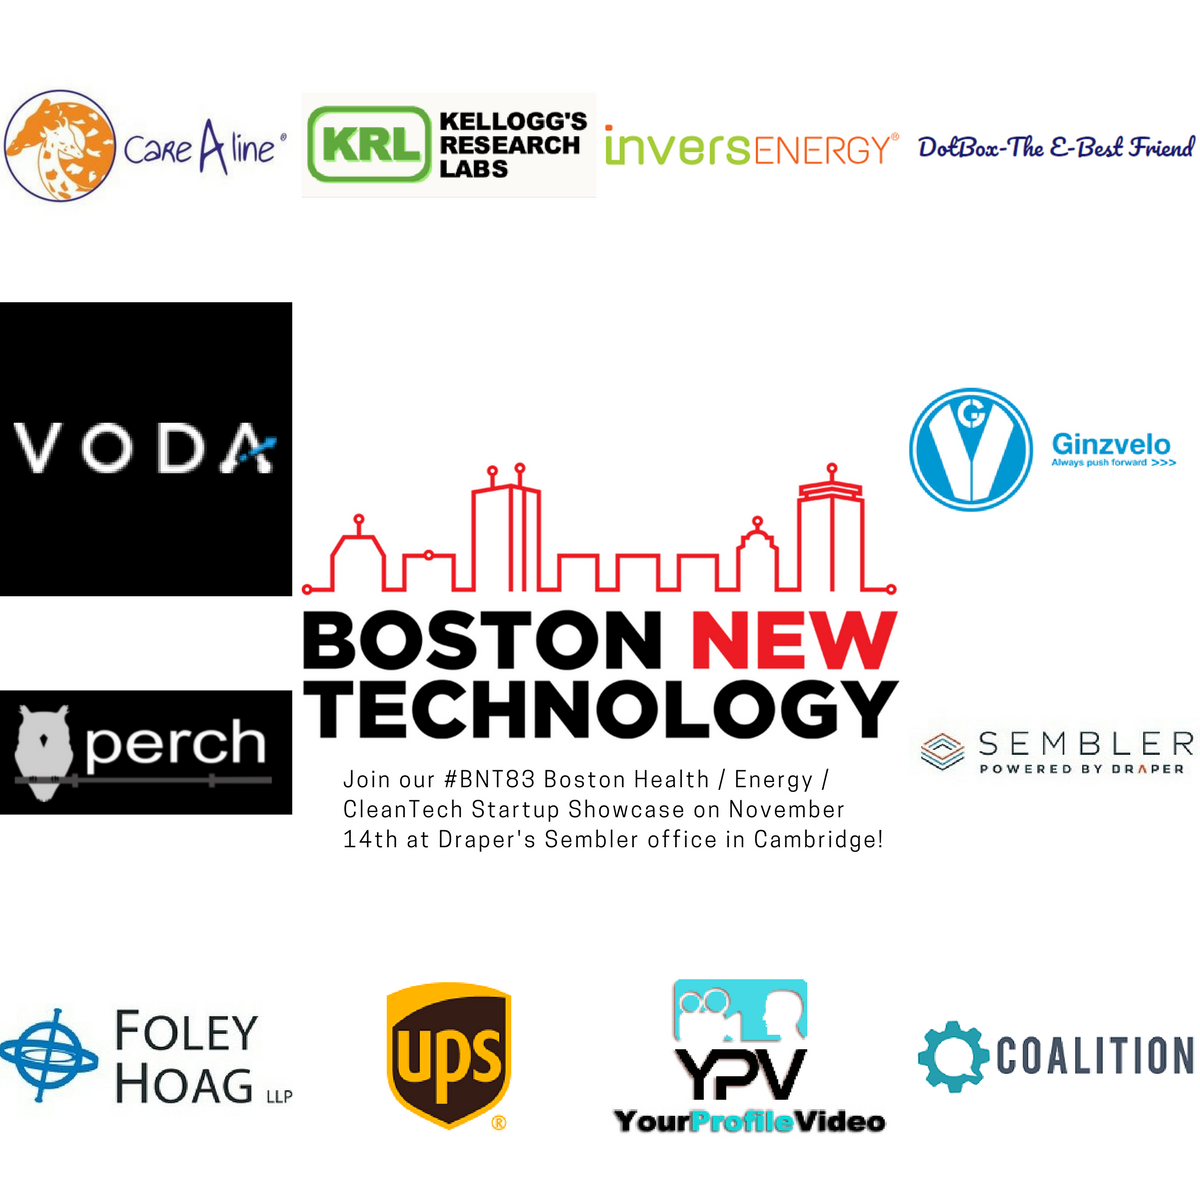 Join Boston New Technology's #BNT83 Startup Showcase